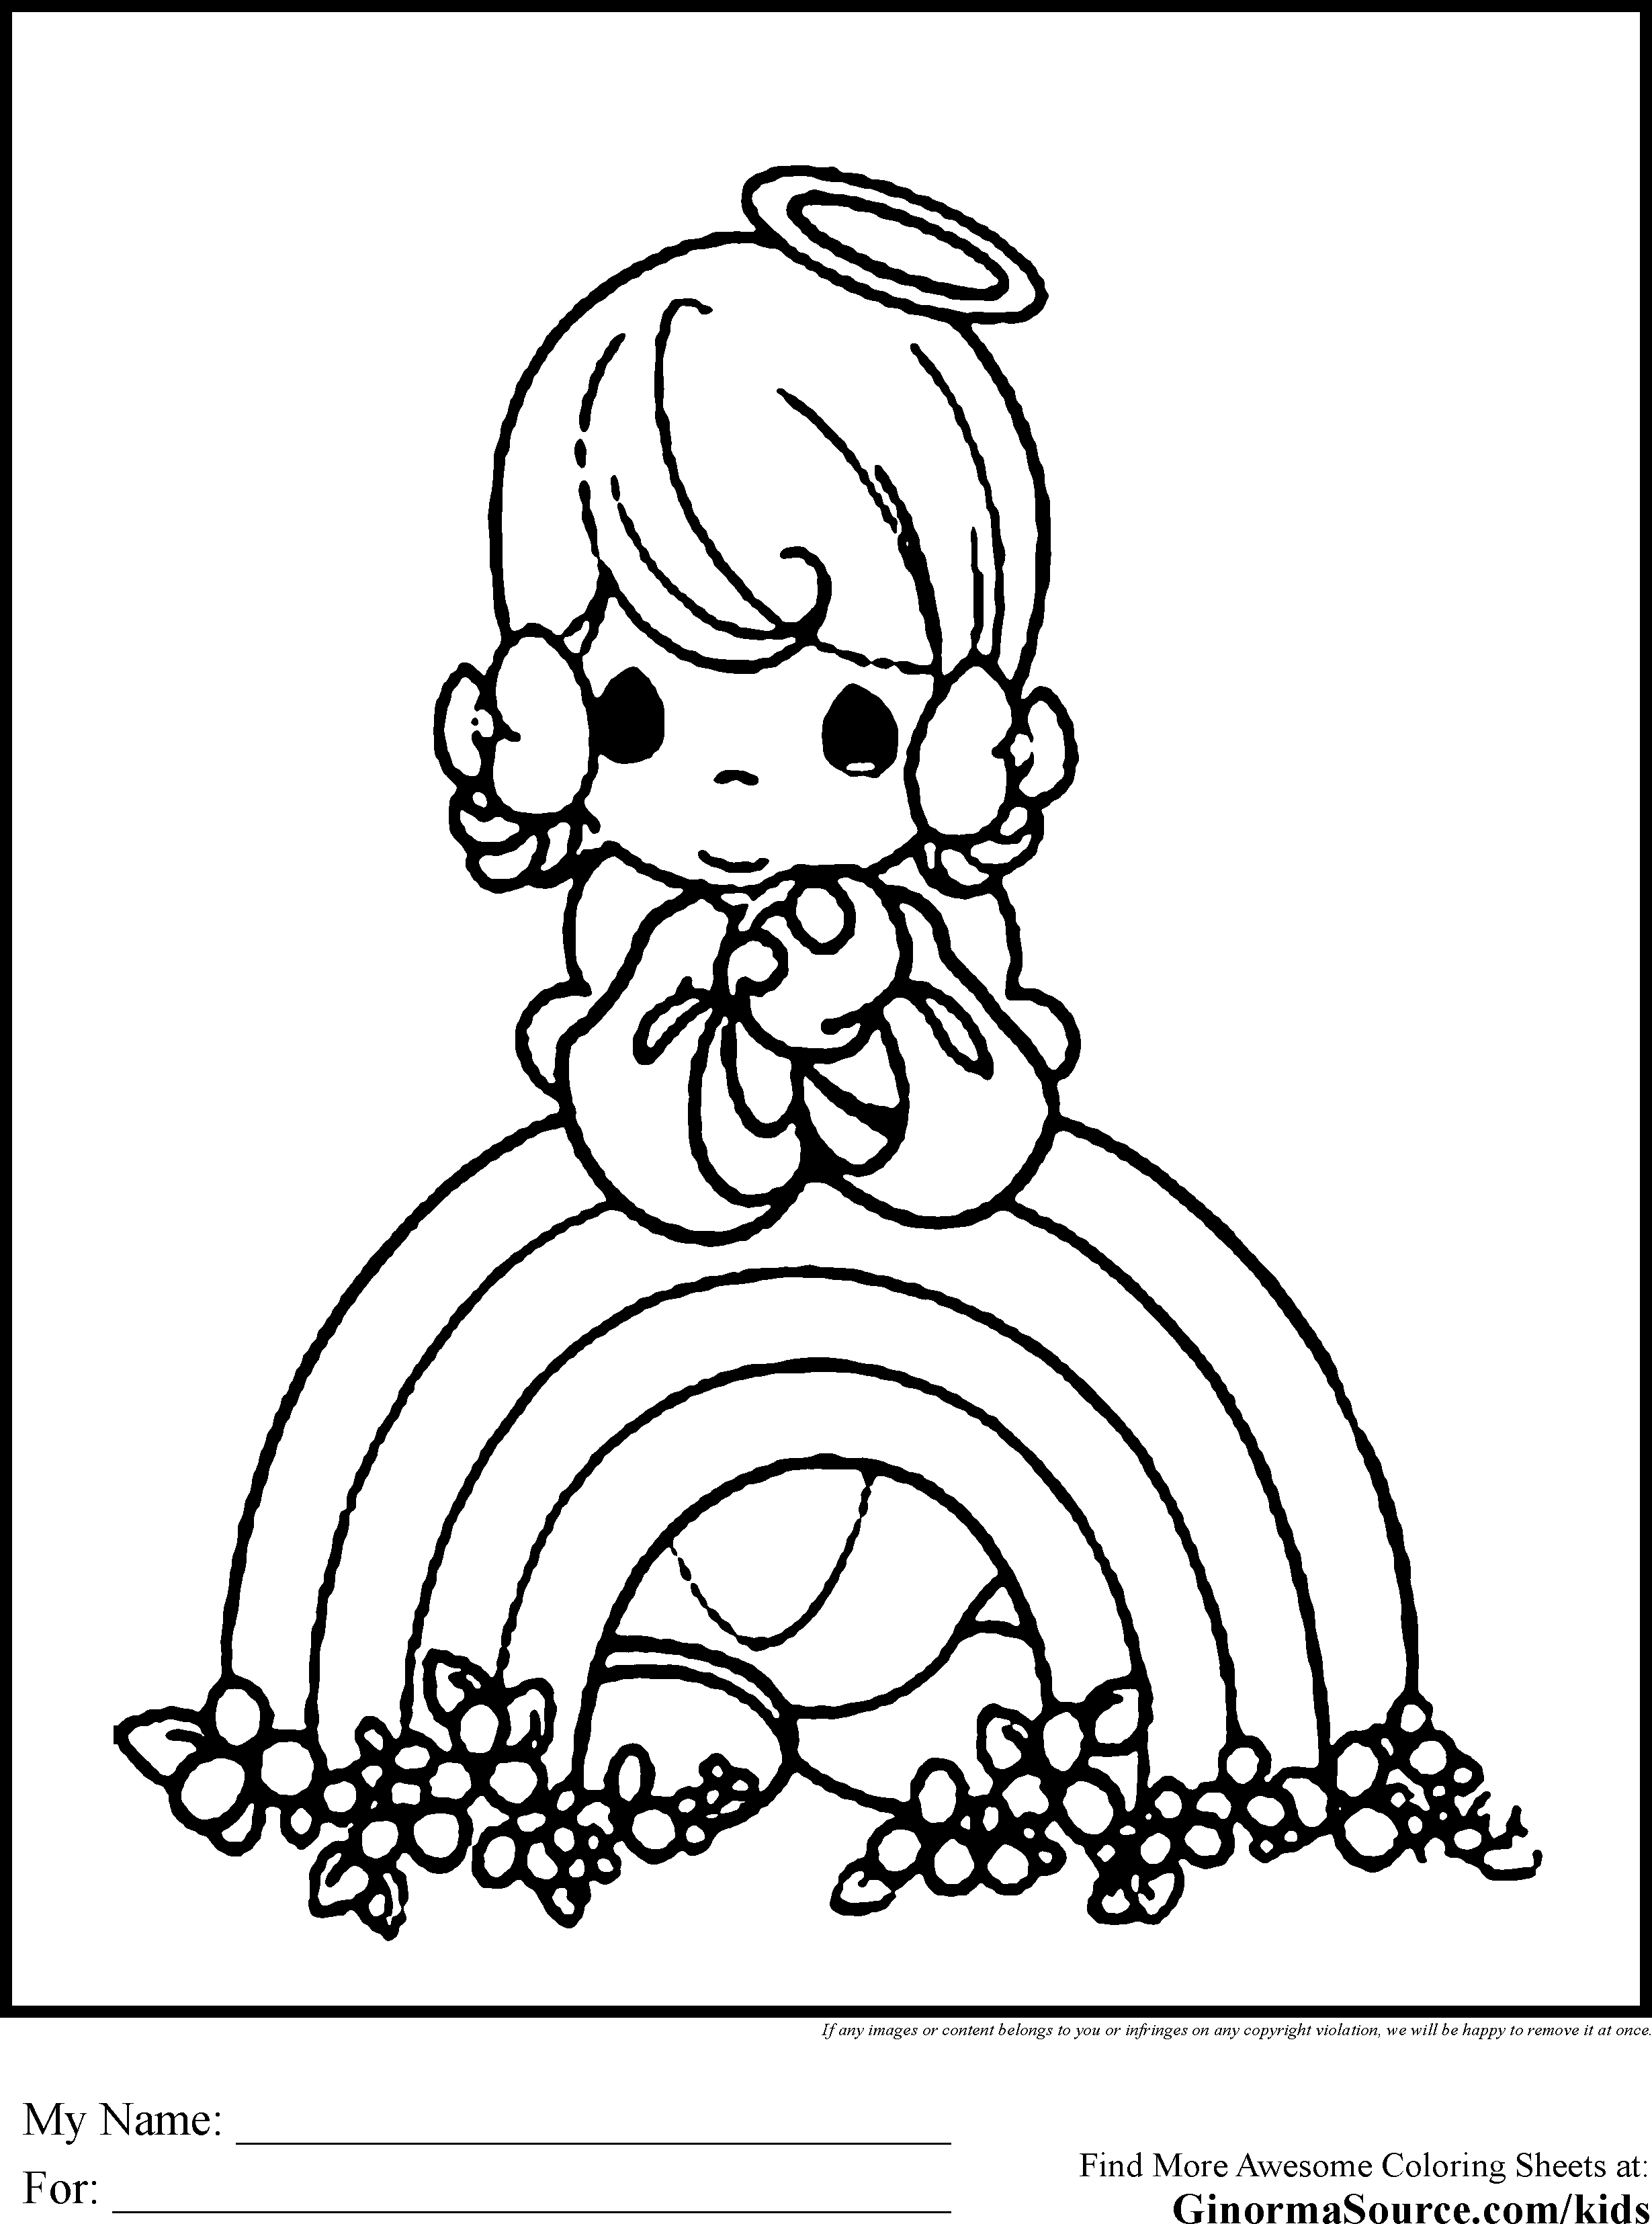 Cute Coloring Pages To Print